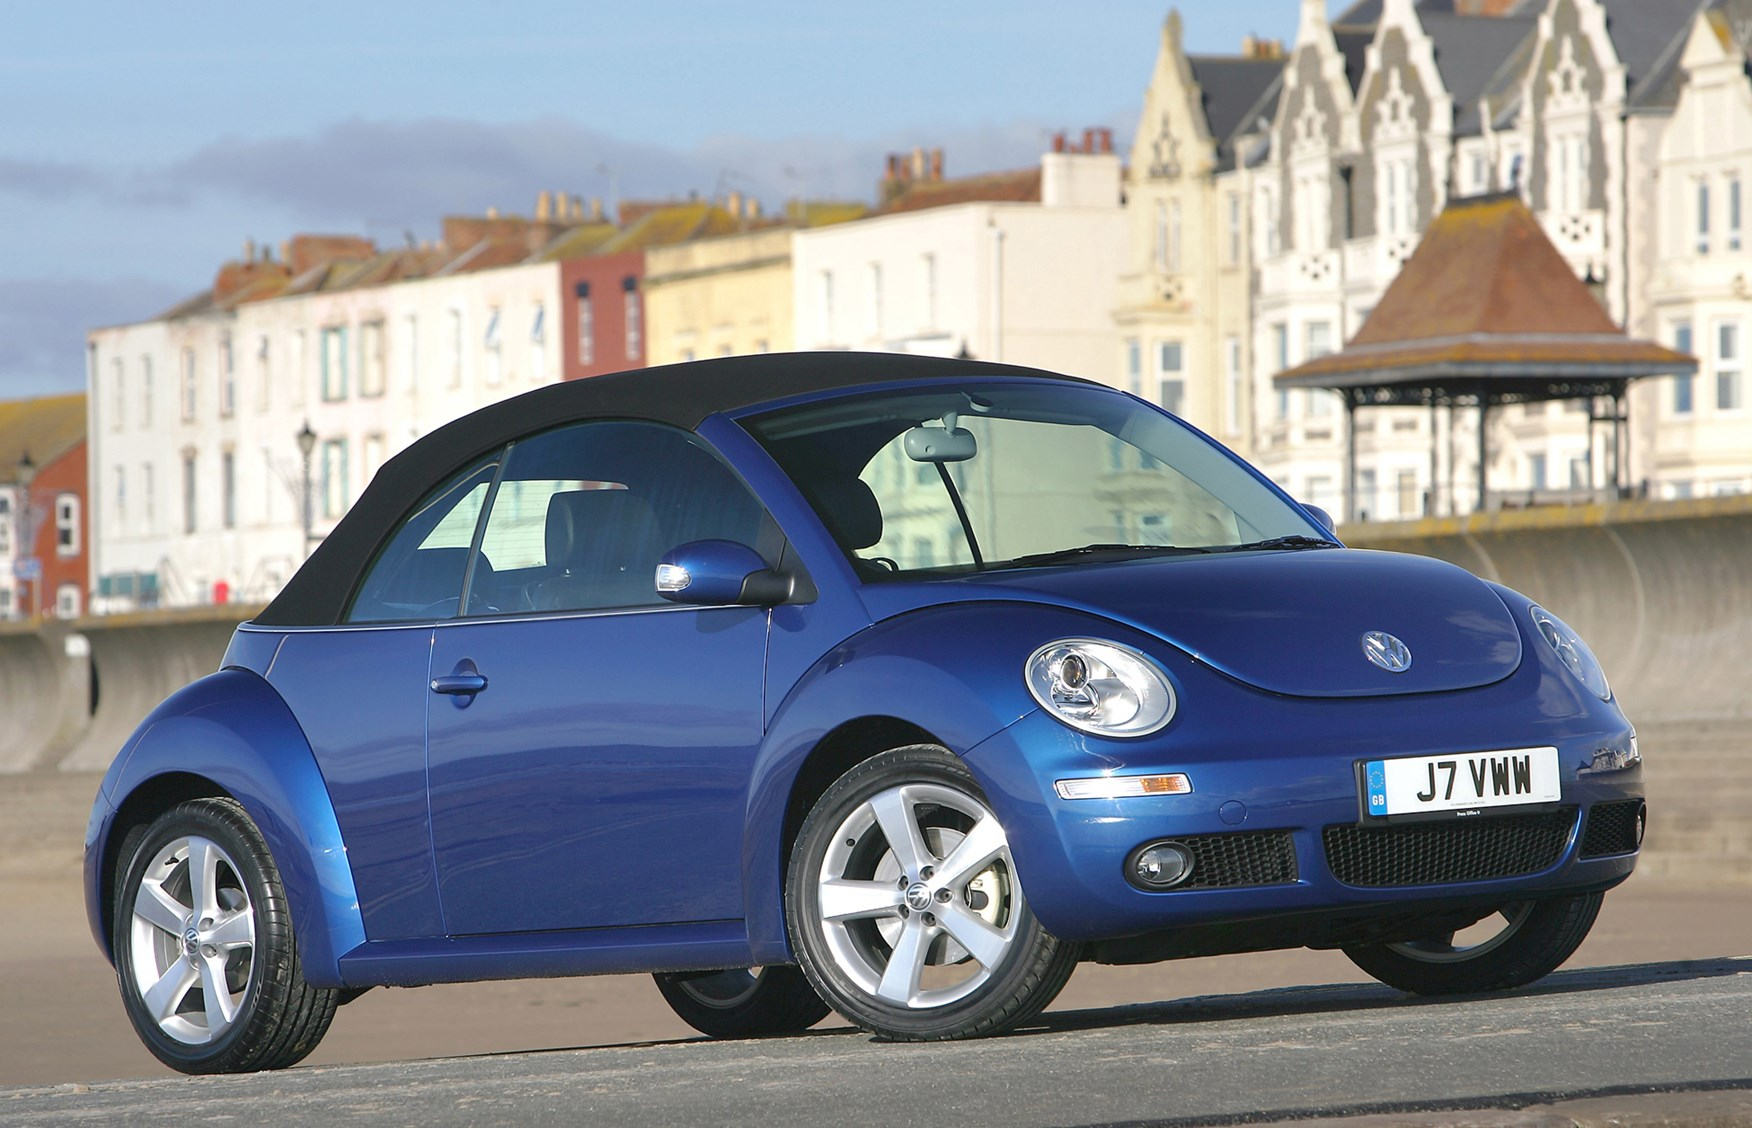 Volkswagen Beetle Cabriolet 2003 2010 Features Equipment And 2008 Front Suspension Components Car Parts Diagram Accessories Parkers